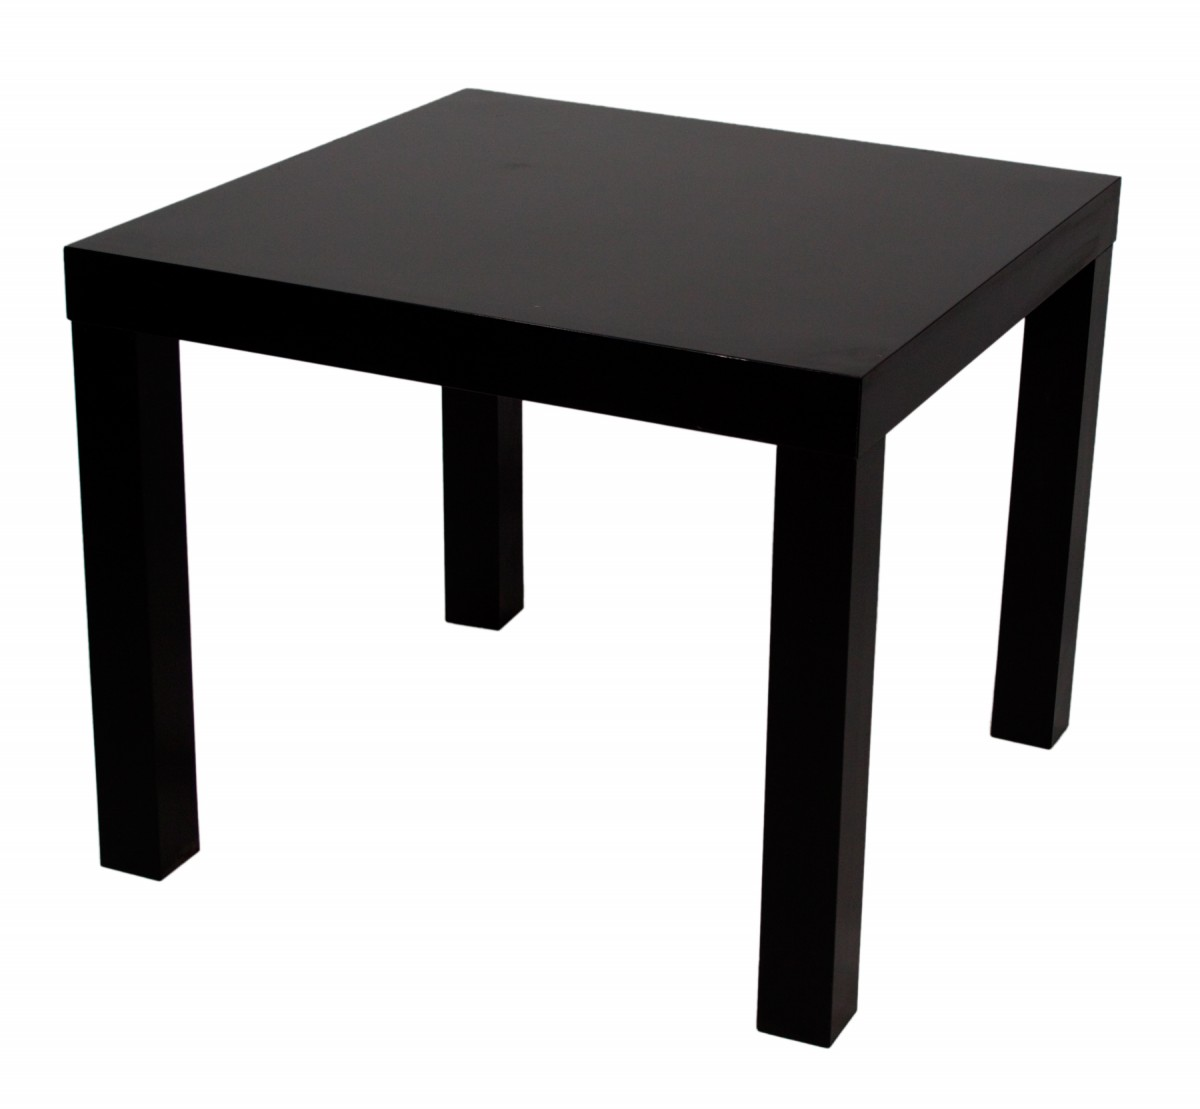 Table noire avec rallonge maison design for Table rallonge